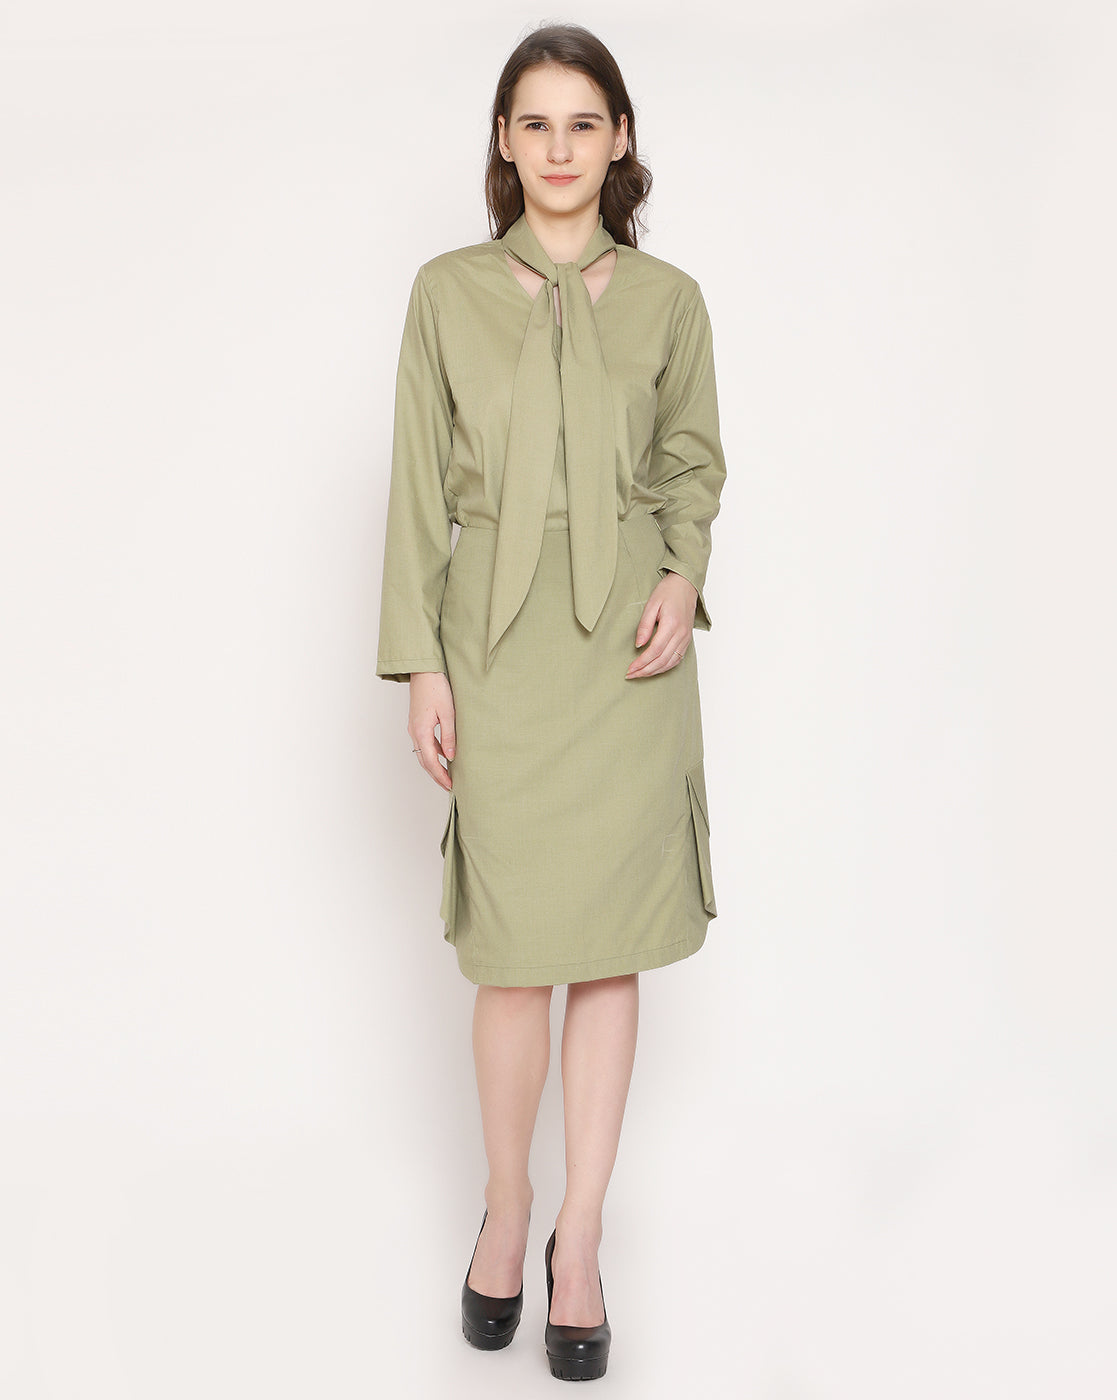 The Classic Cascade Skirt - Olive Green